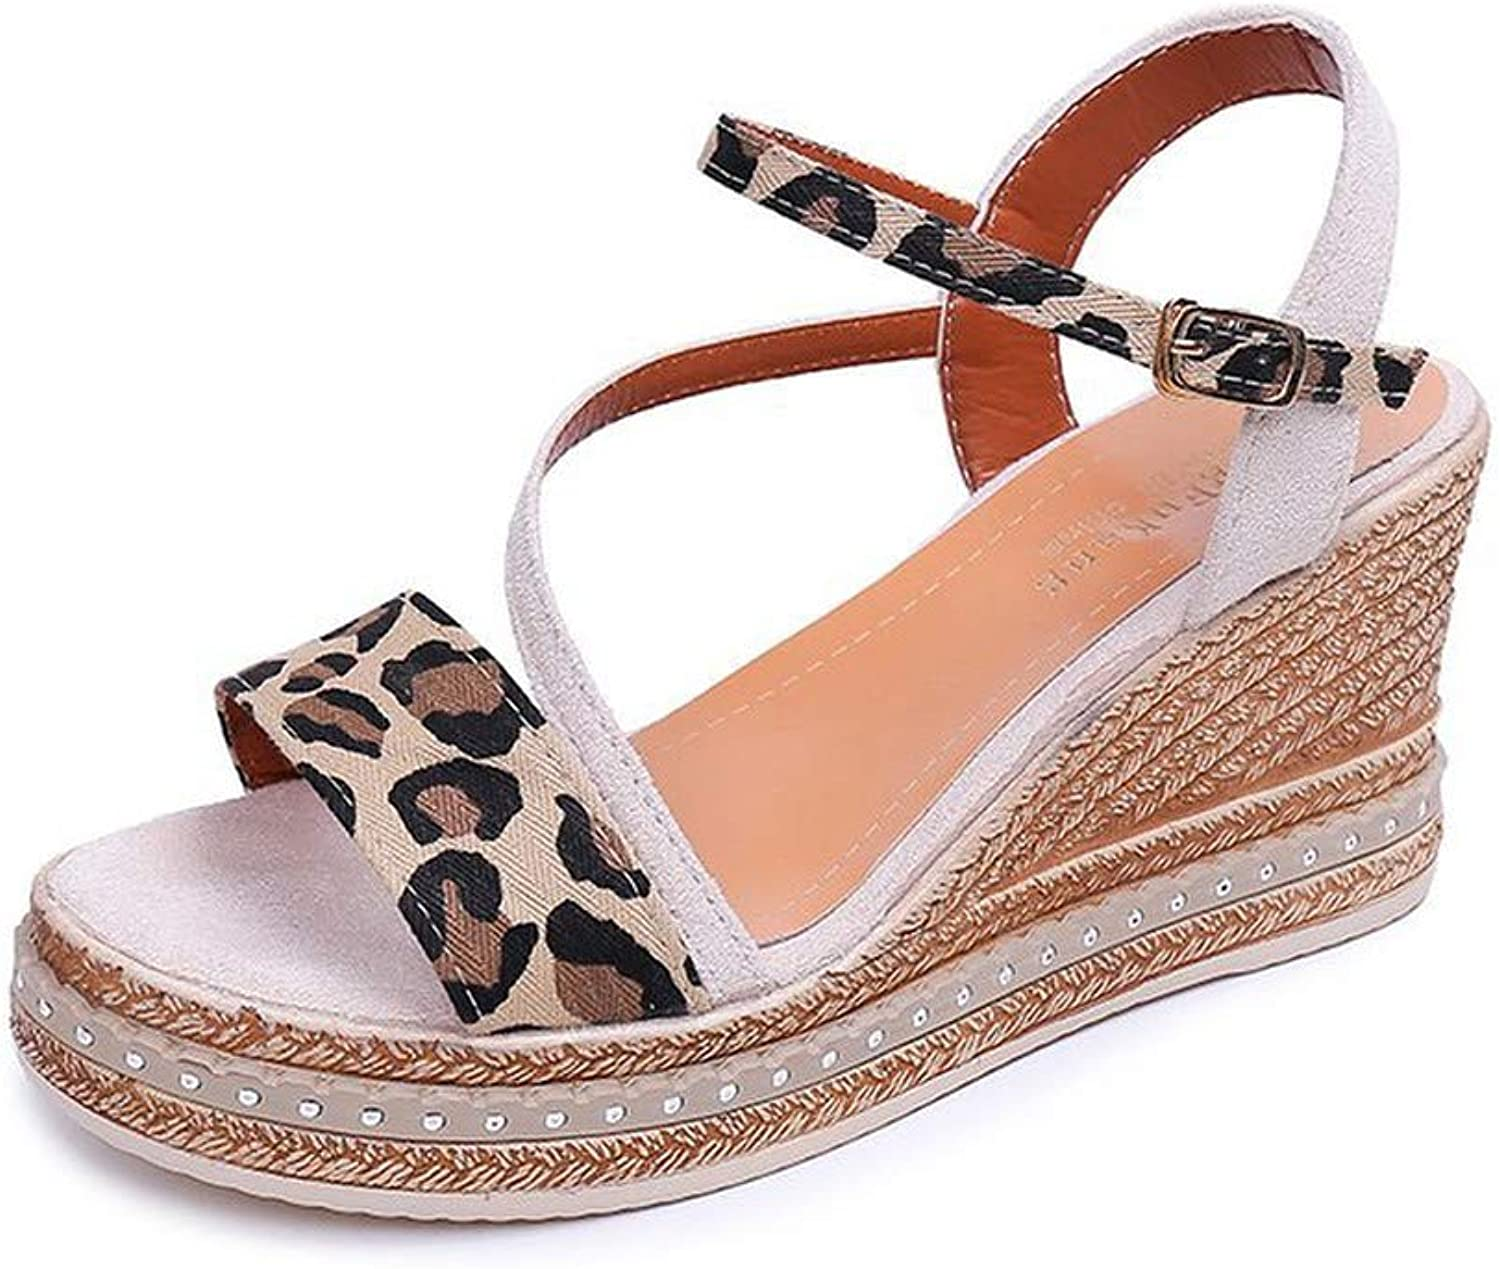 WTKRSM Summer Wedge with Platform Sandals Women's Buckle with Open Toe shoes Workplace Sandals